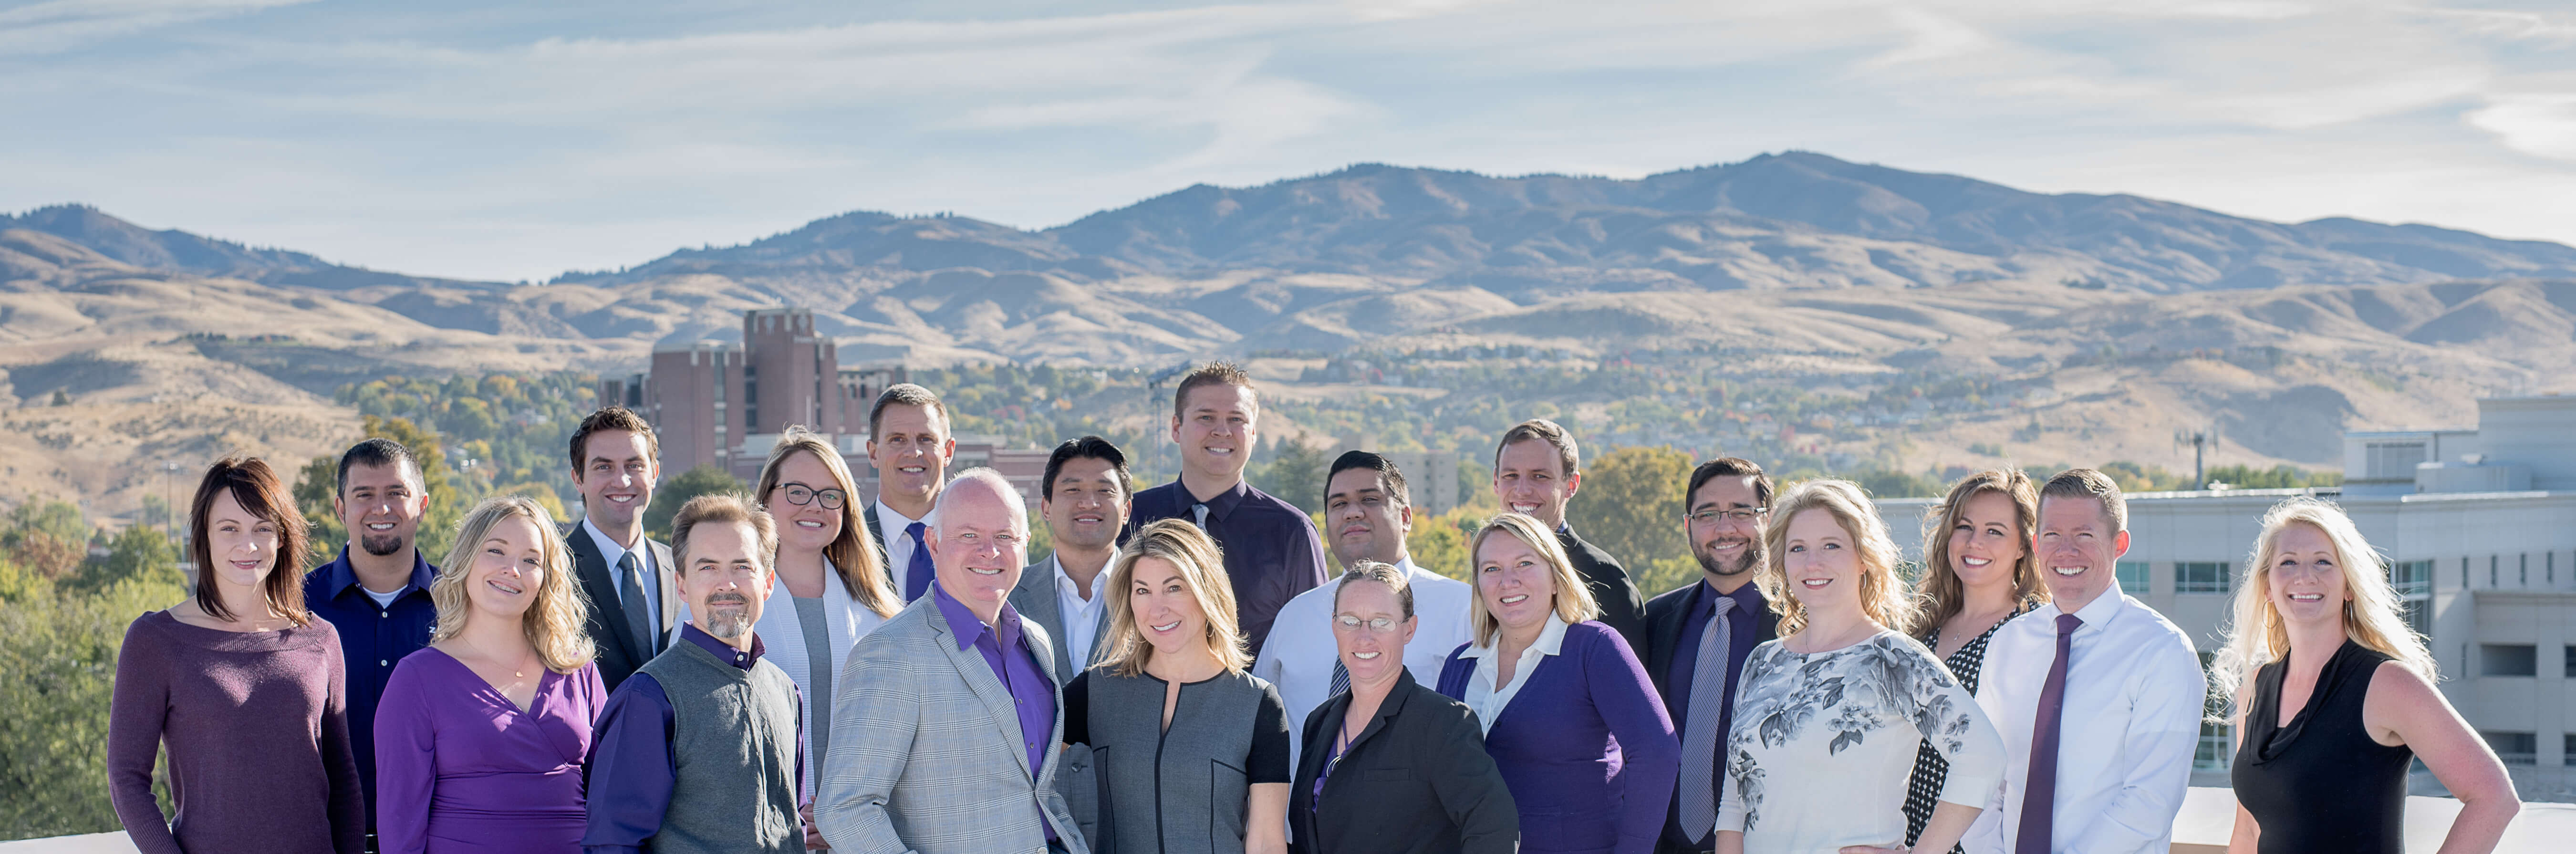 Zasio company photo with all our employees and beautiful Boise Idaho in the background